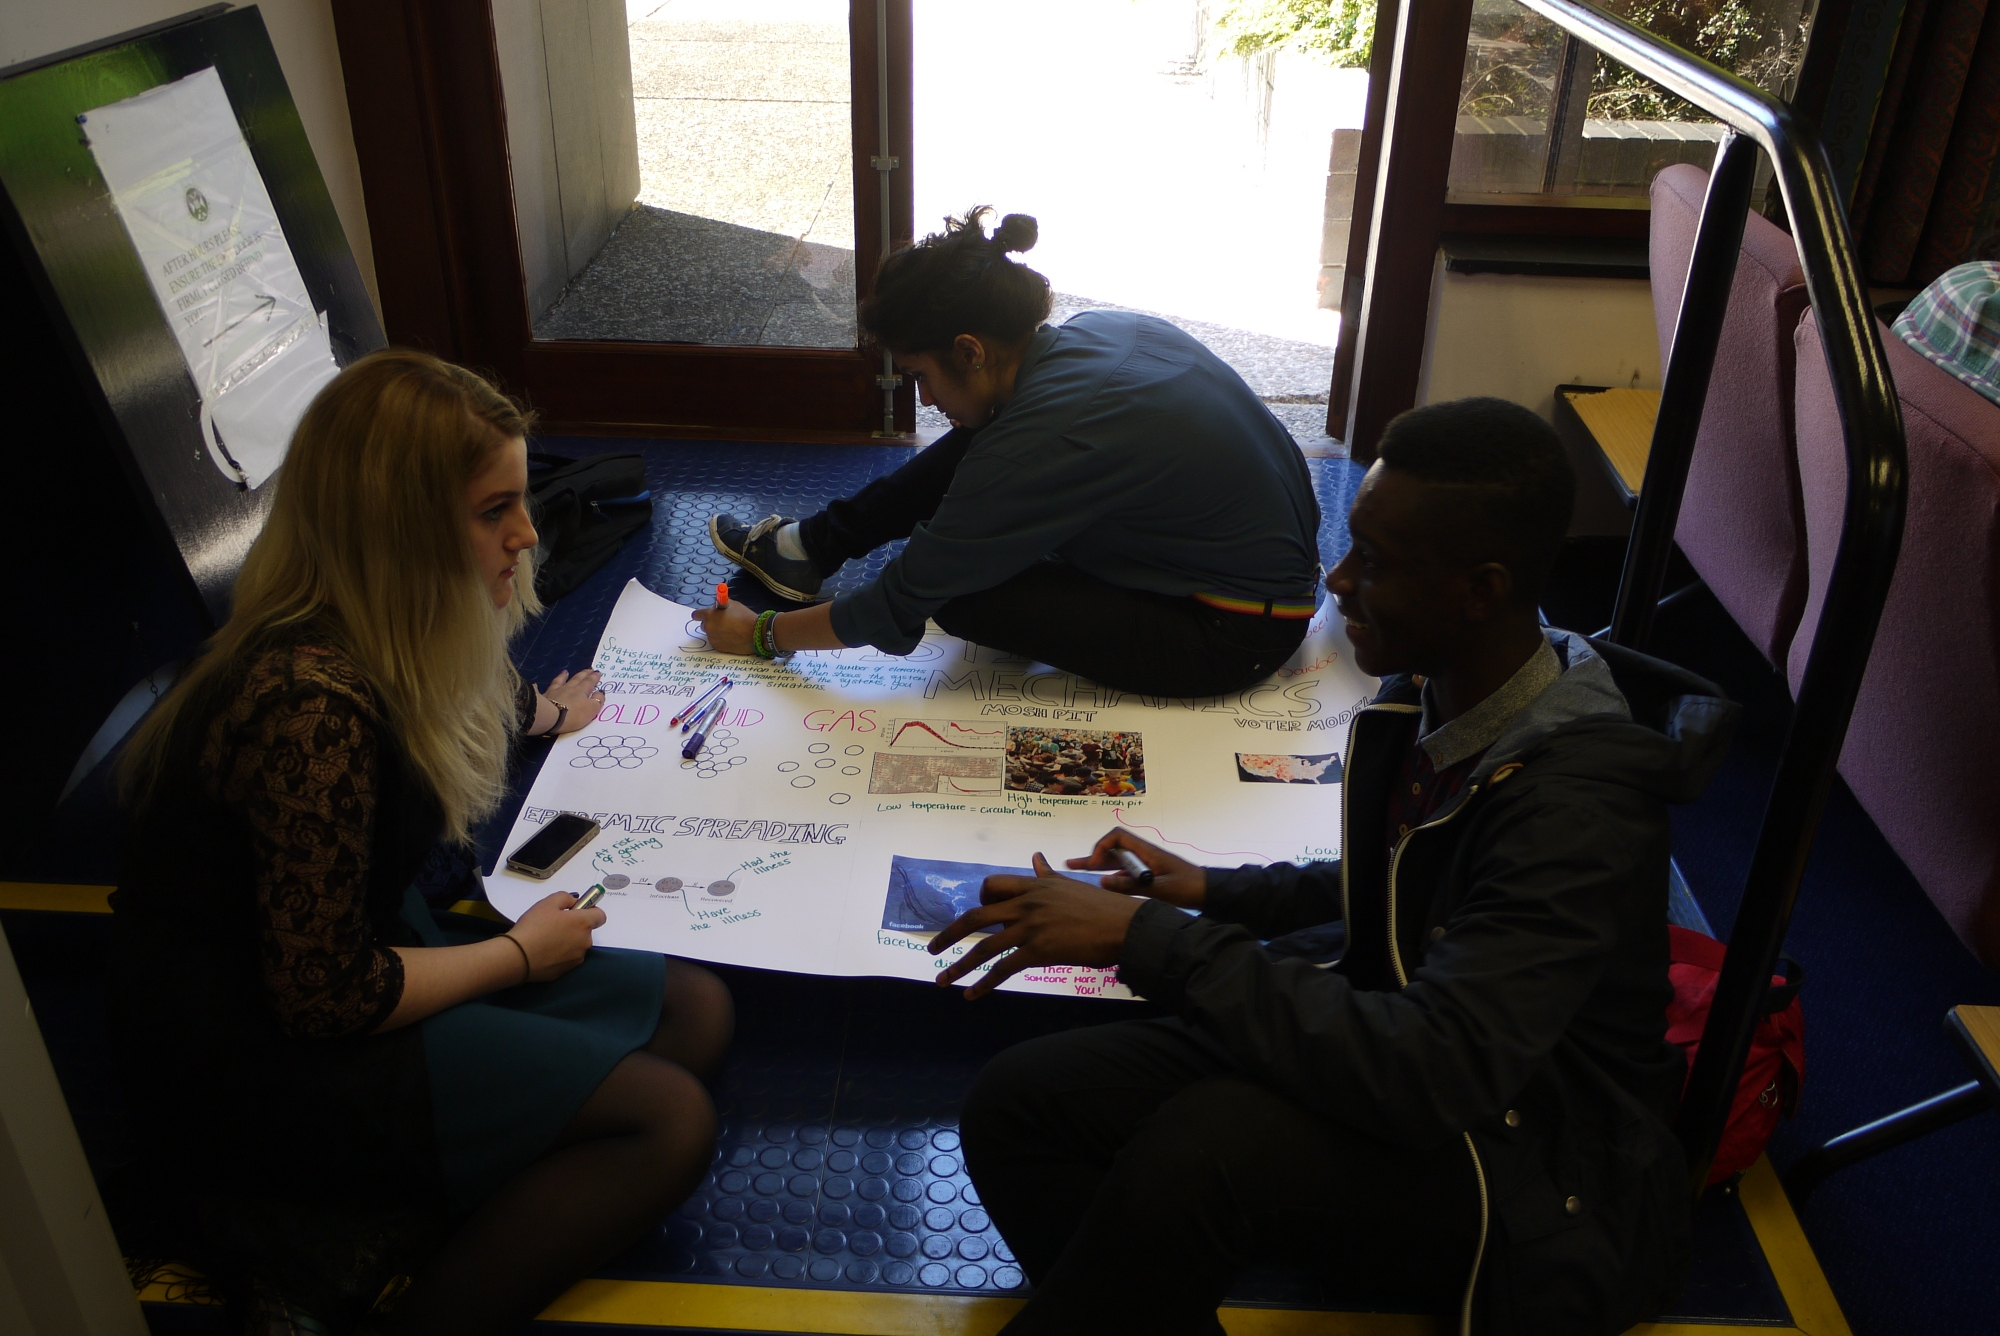 Attendees completing a poster.